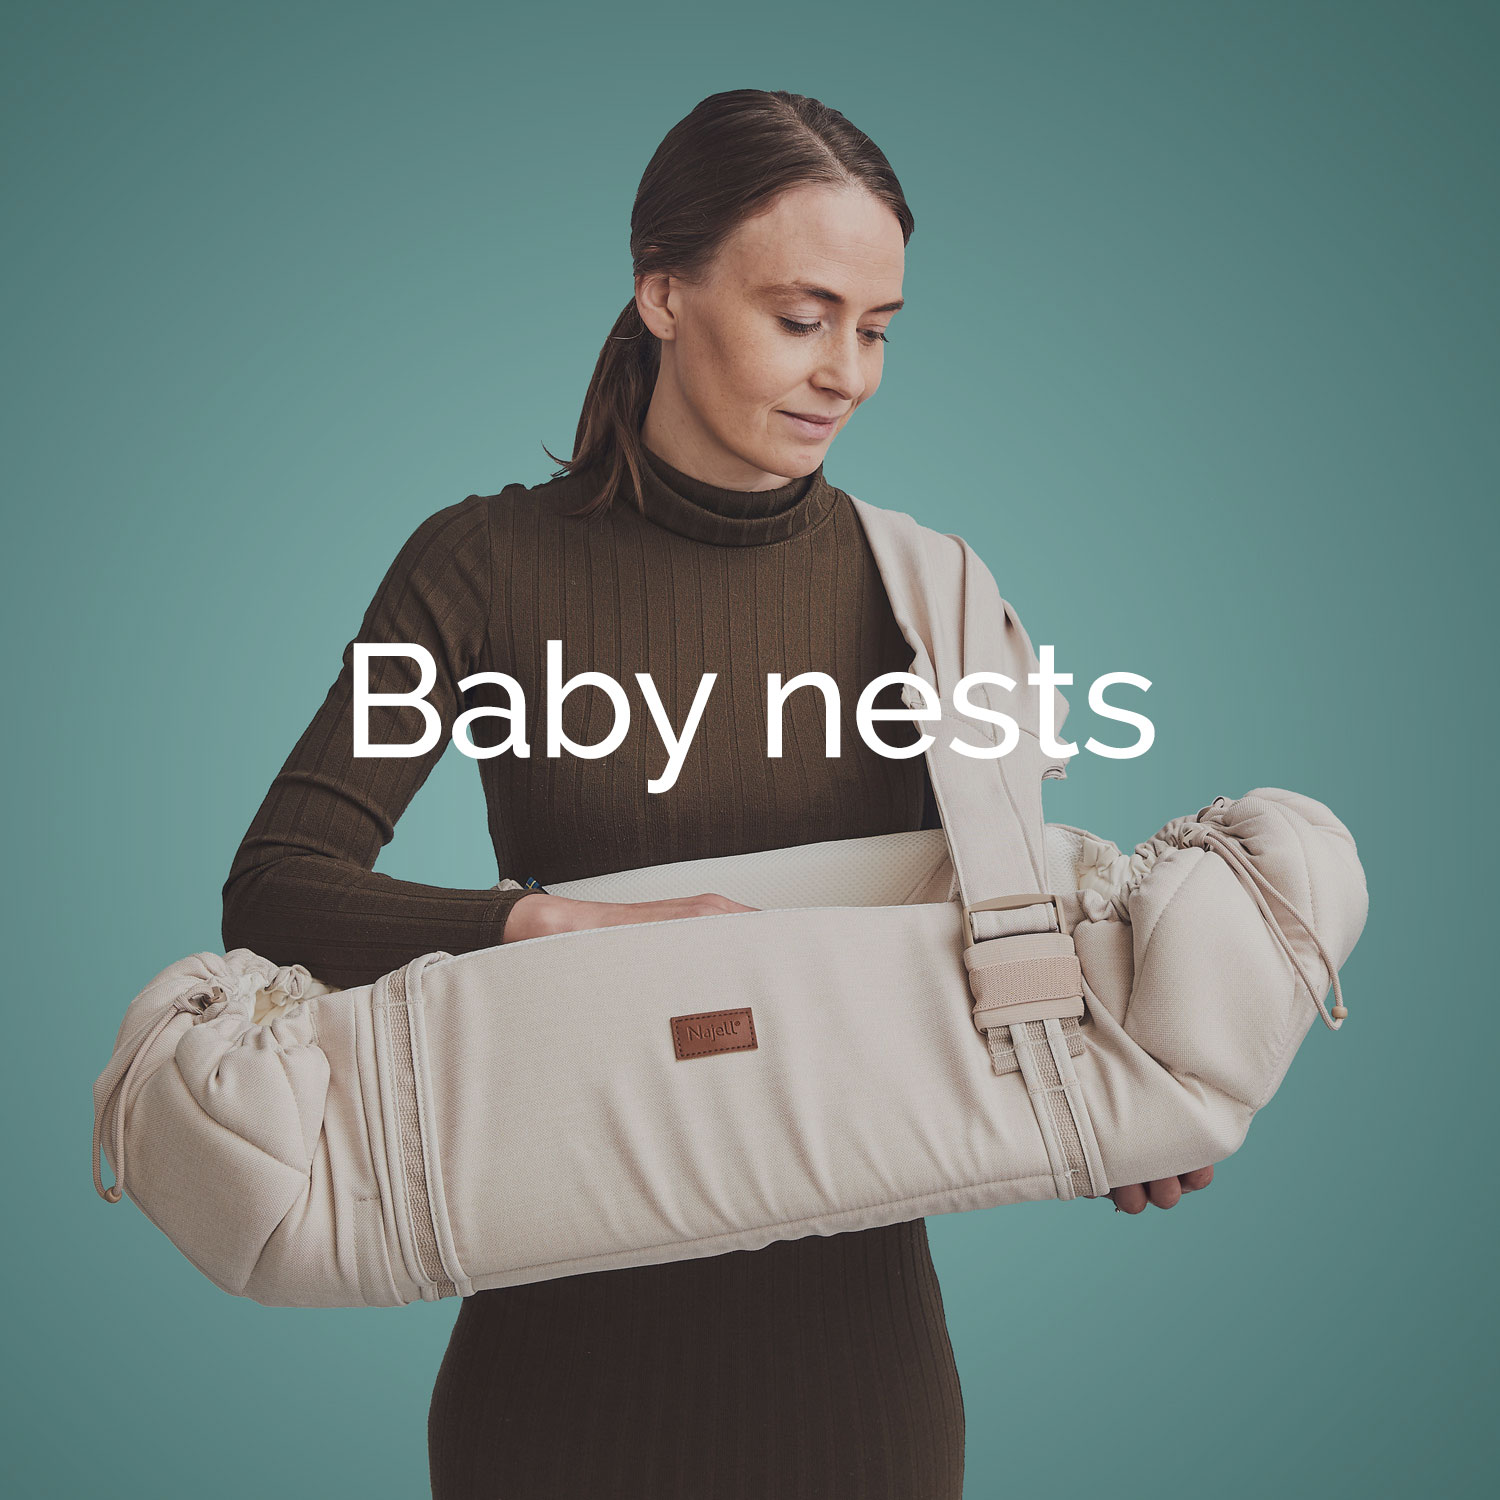 Najell Product Categories - Baby nests